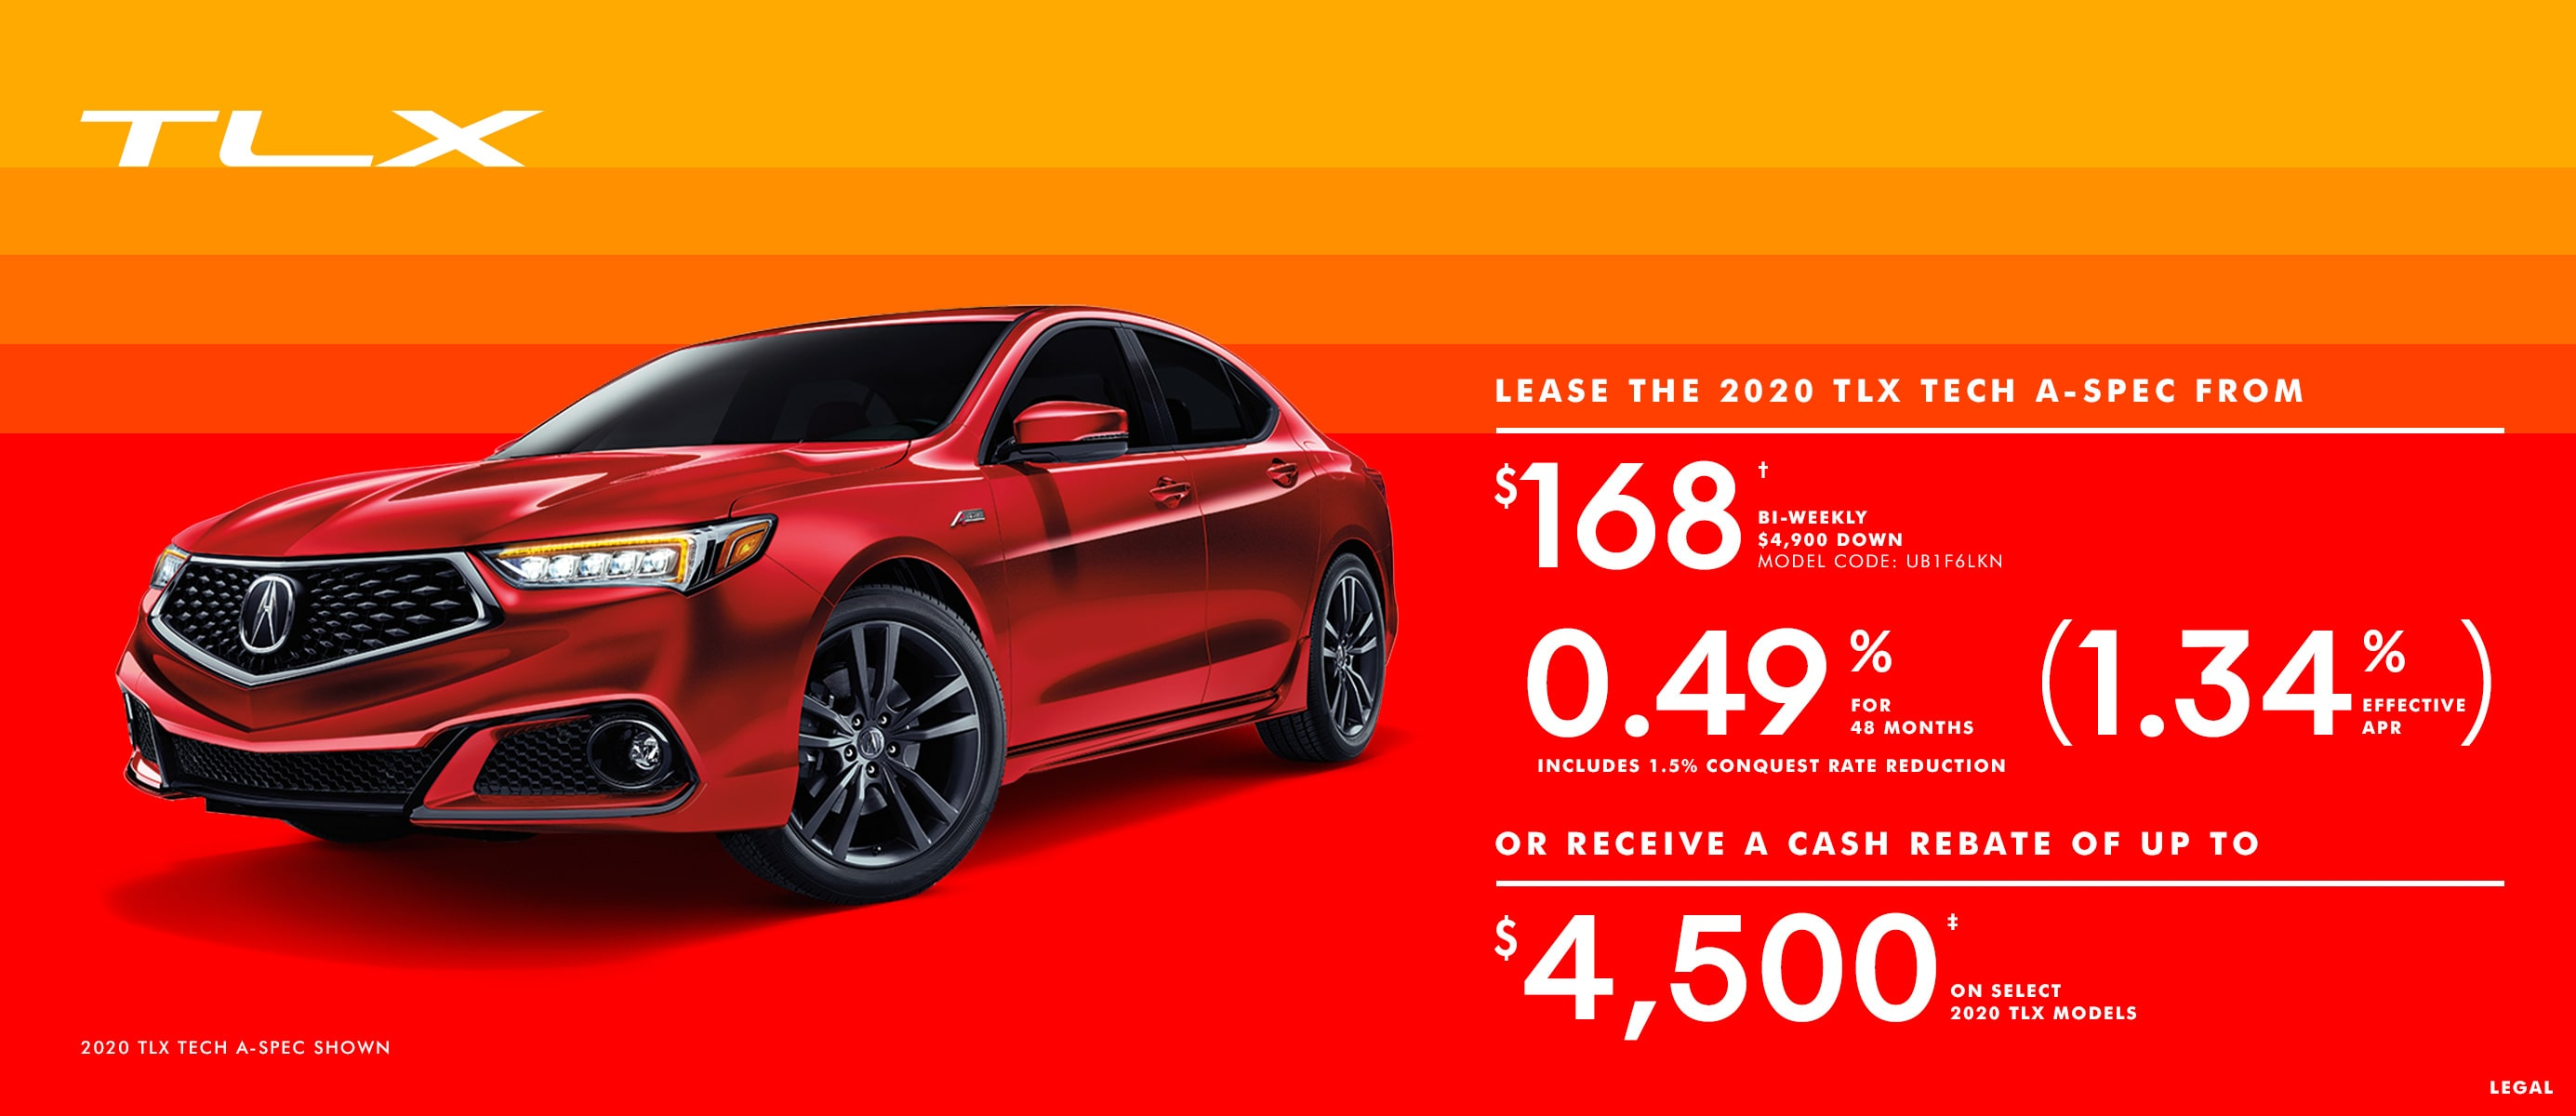 The High-Performing TLX